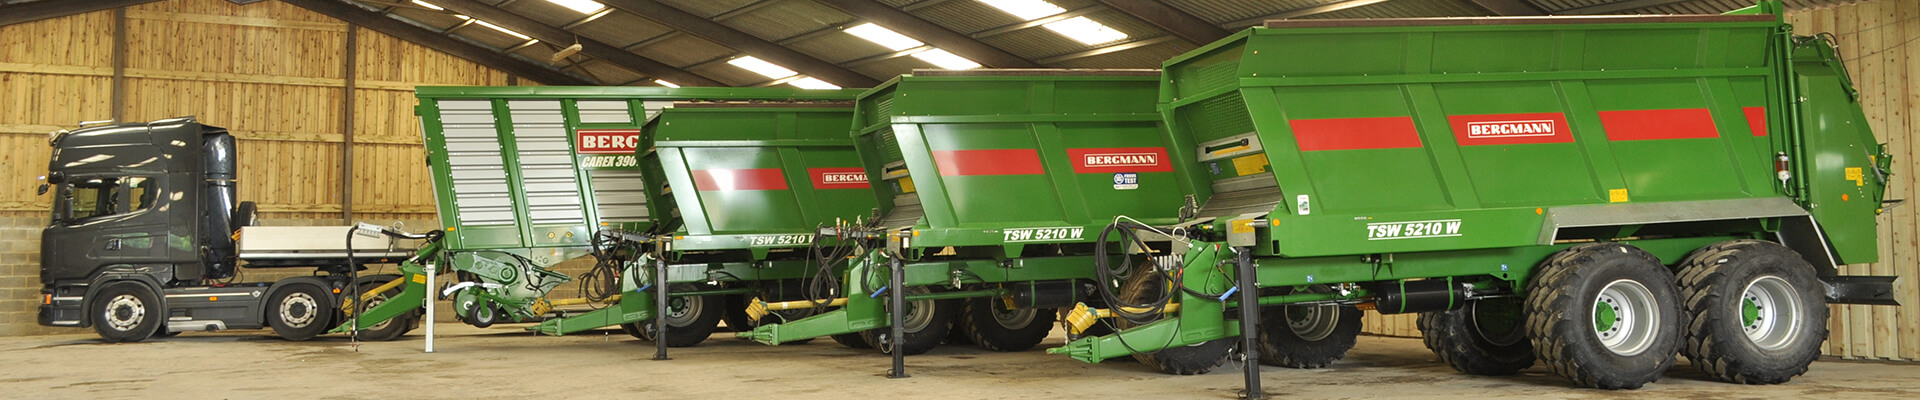 Bergmann machinery in building spreaders and truck